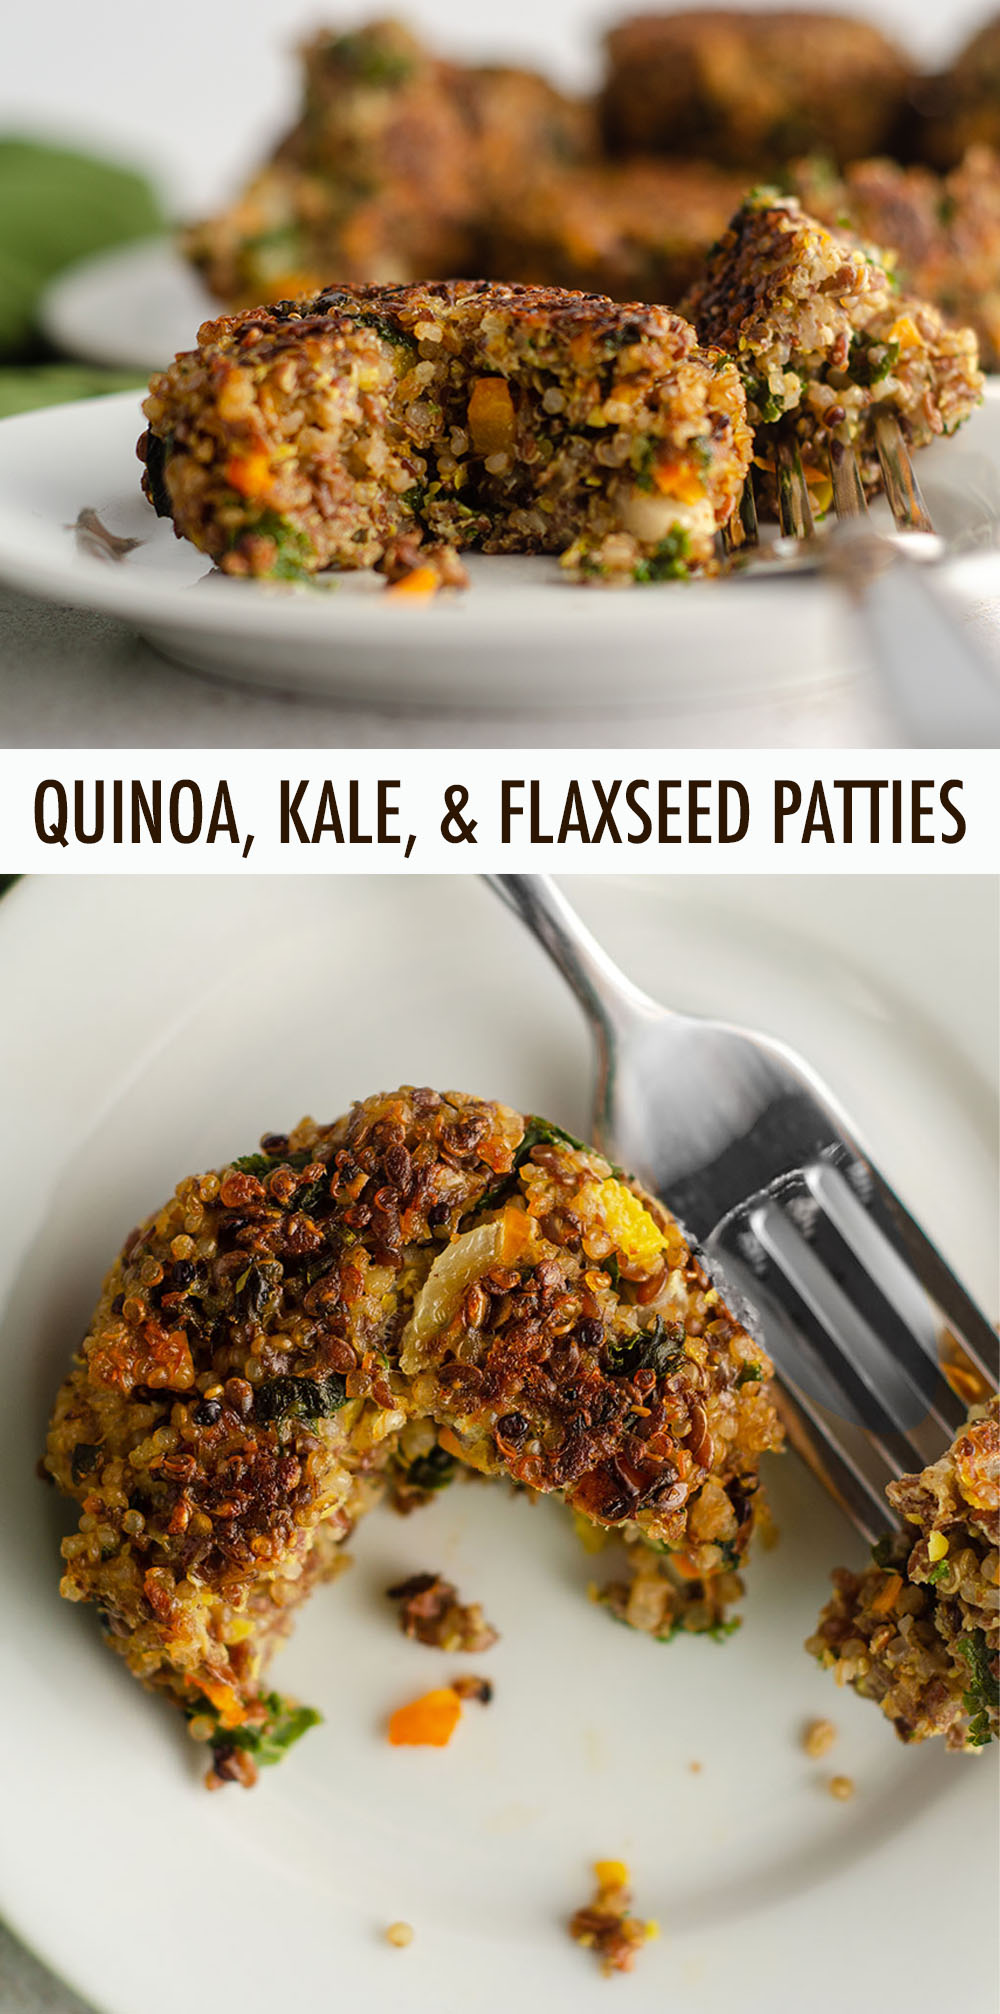 Hearty quinoa patties, jam packed with vegetables and protein. Gluten-free and vegetarian friendly!